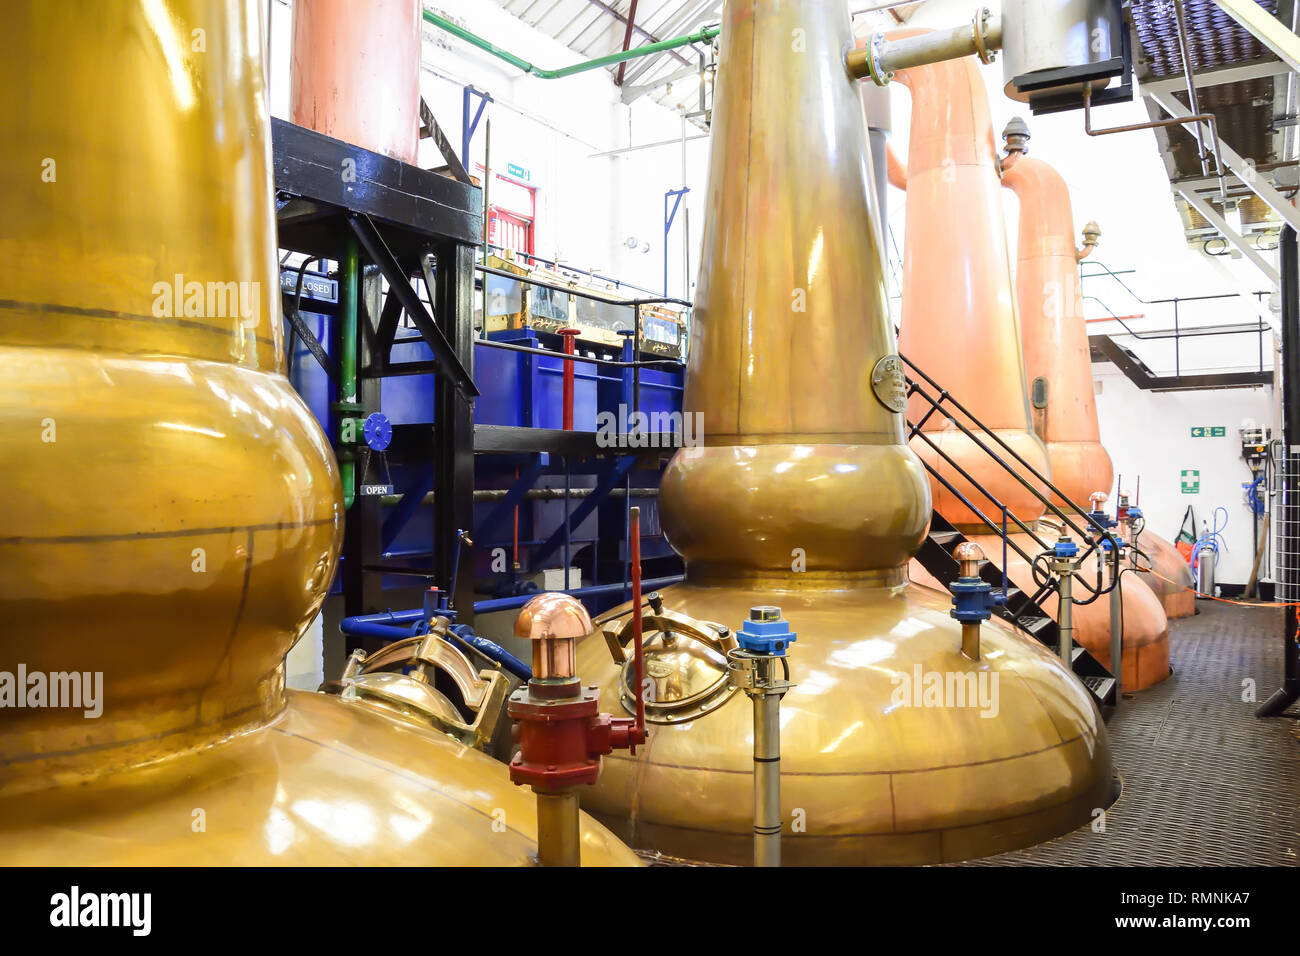 Traditional copper-domed mash tun in Tobermory Distillery, Tobermory, Isle of Bute, Inner Hebrides, Argyll and Bute, Scotland, United Kingdom - Stock Image